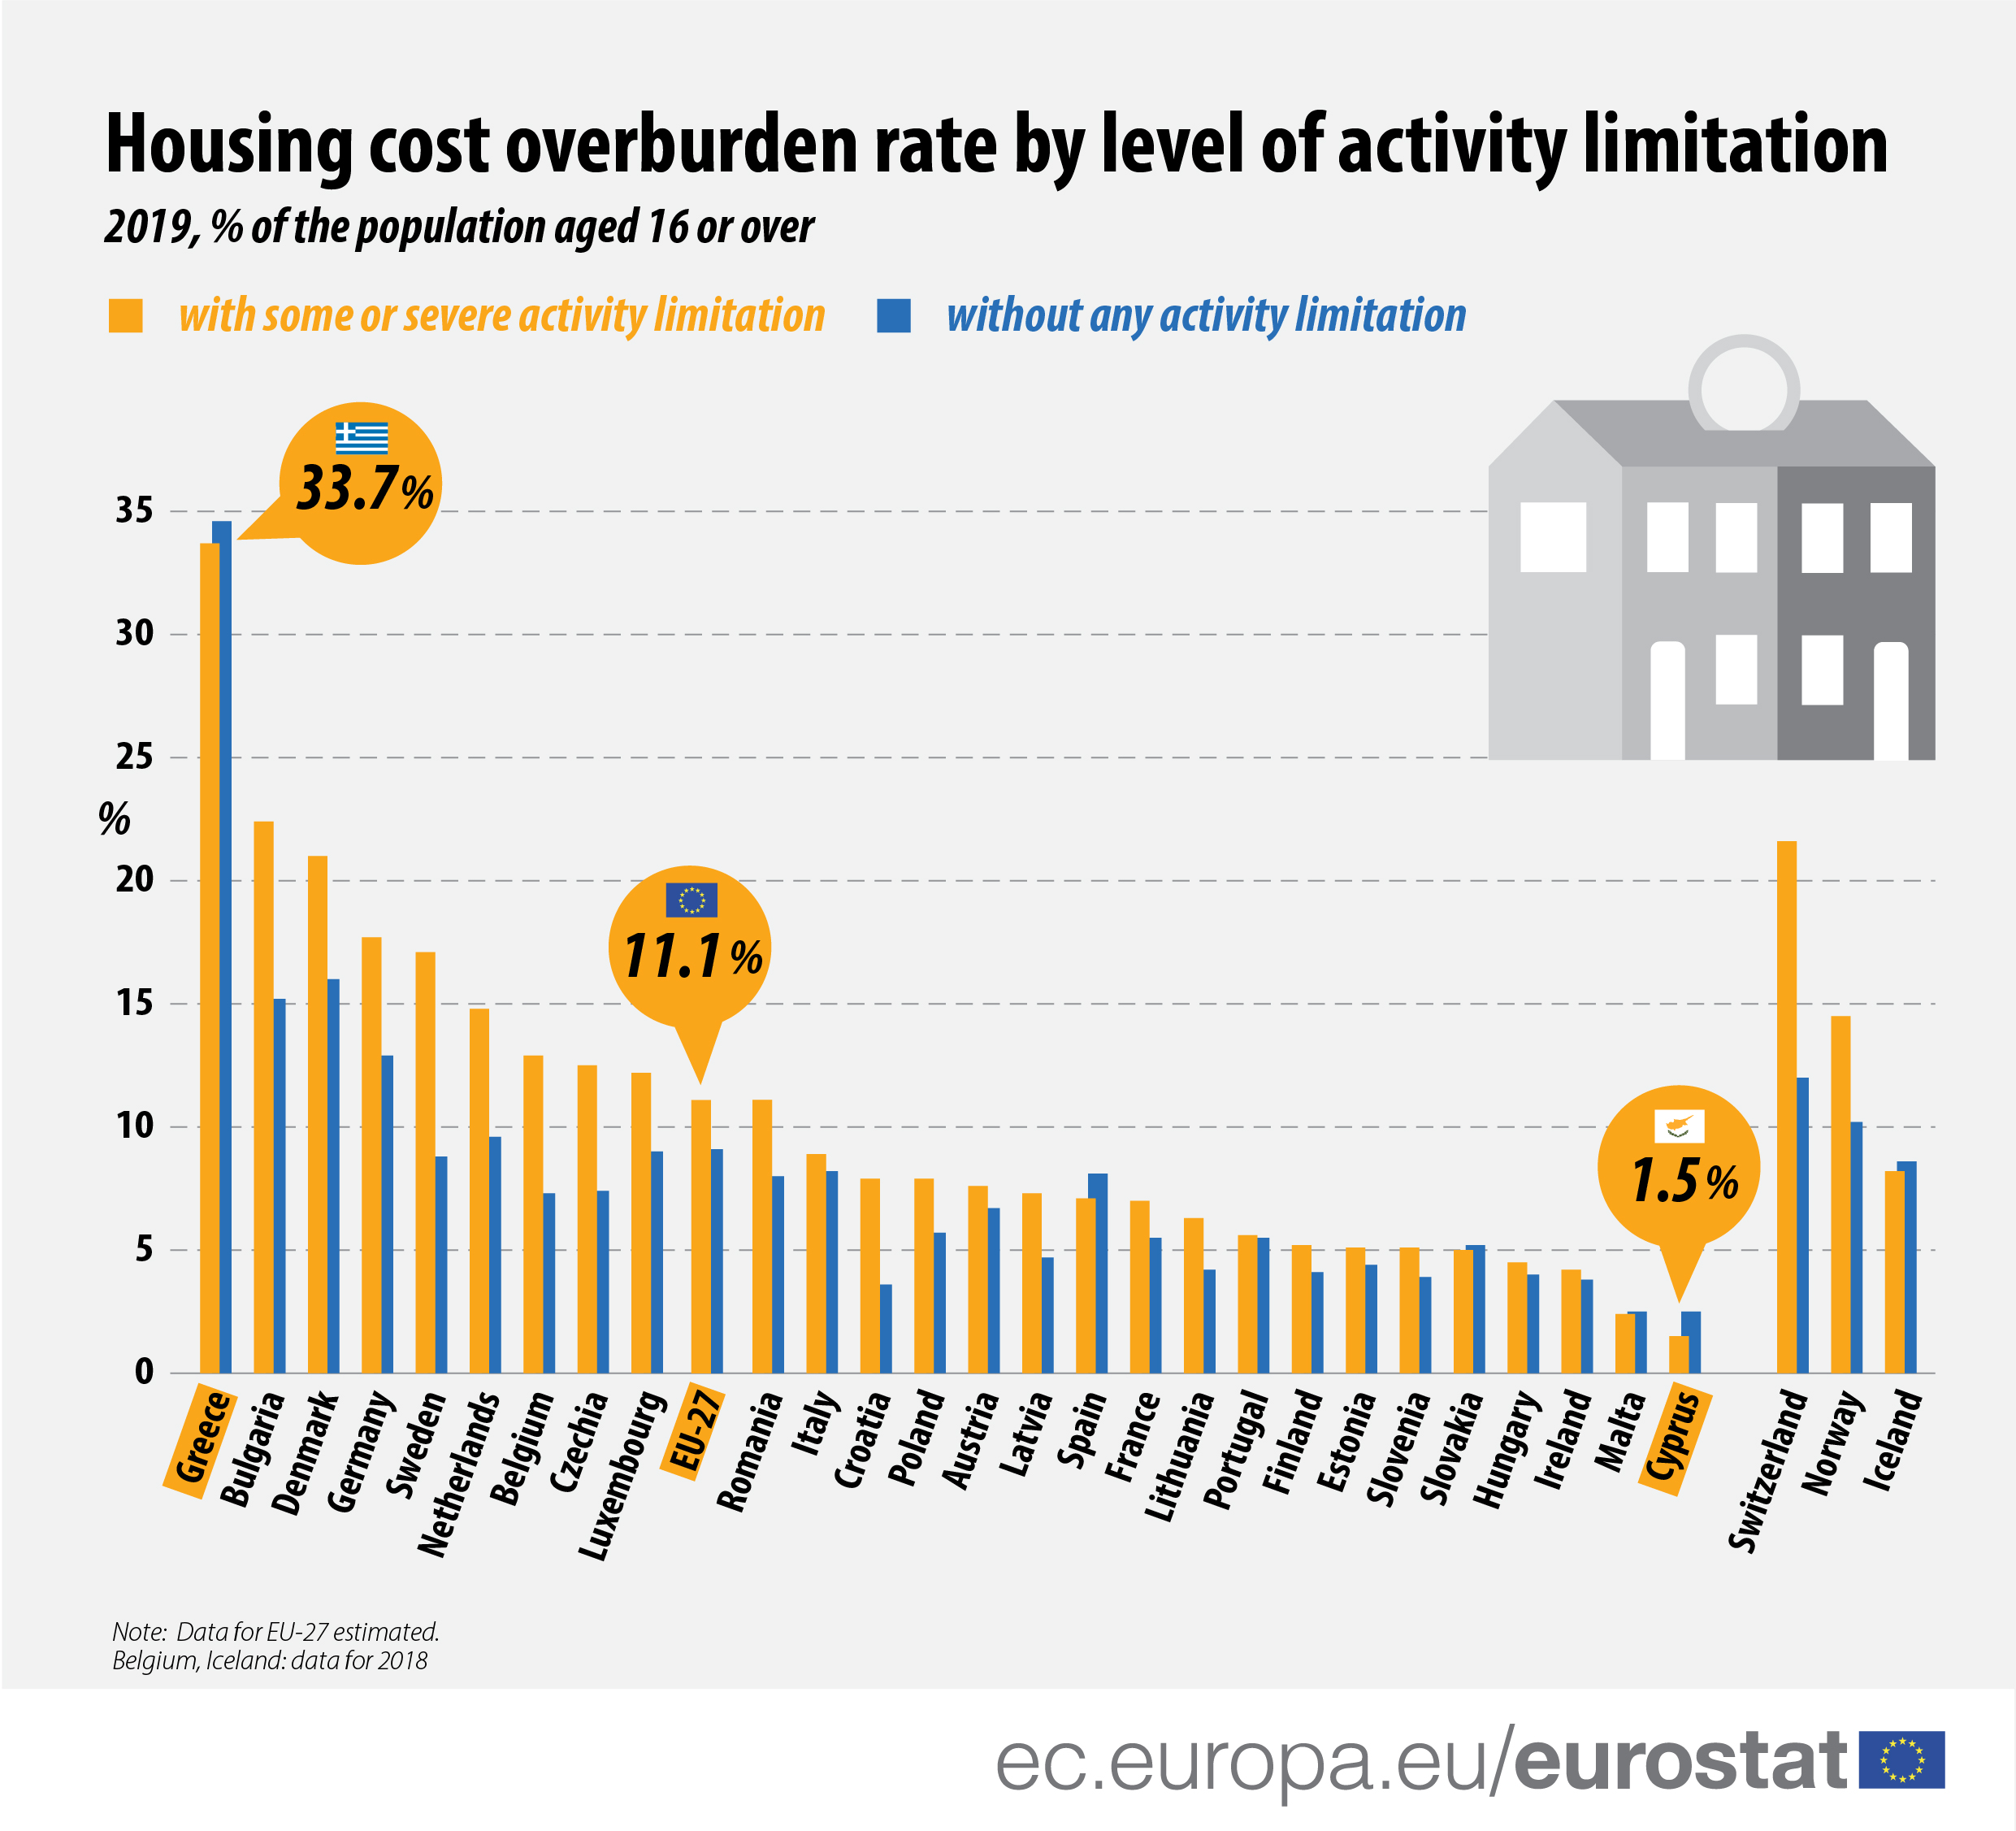 Bar chart showing values per EU country of housing cost overburden rate for people with disabilities and those without it,2019 data